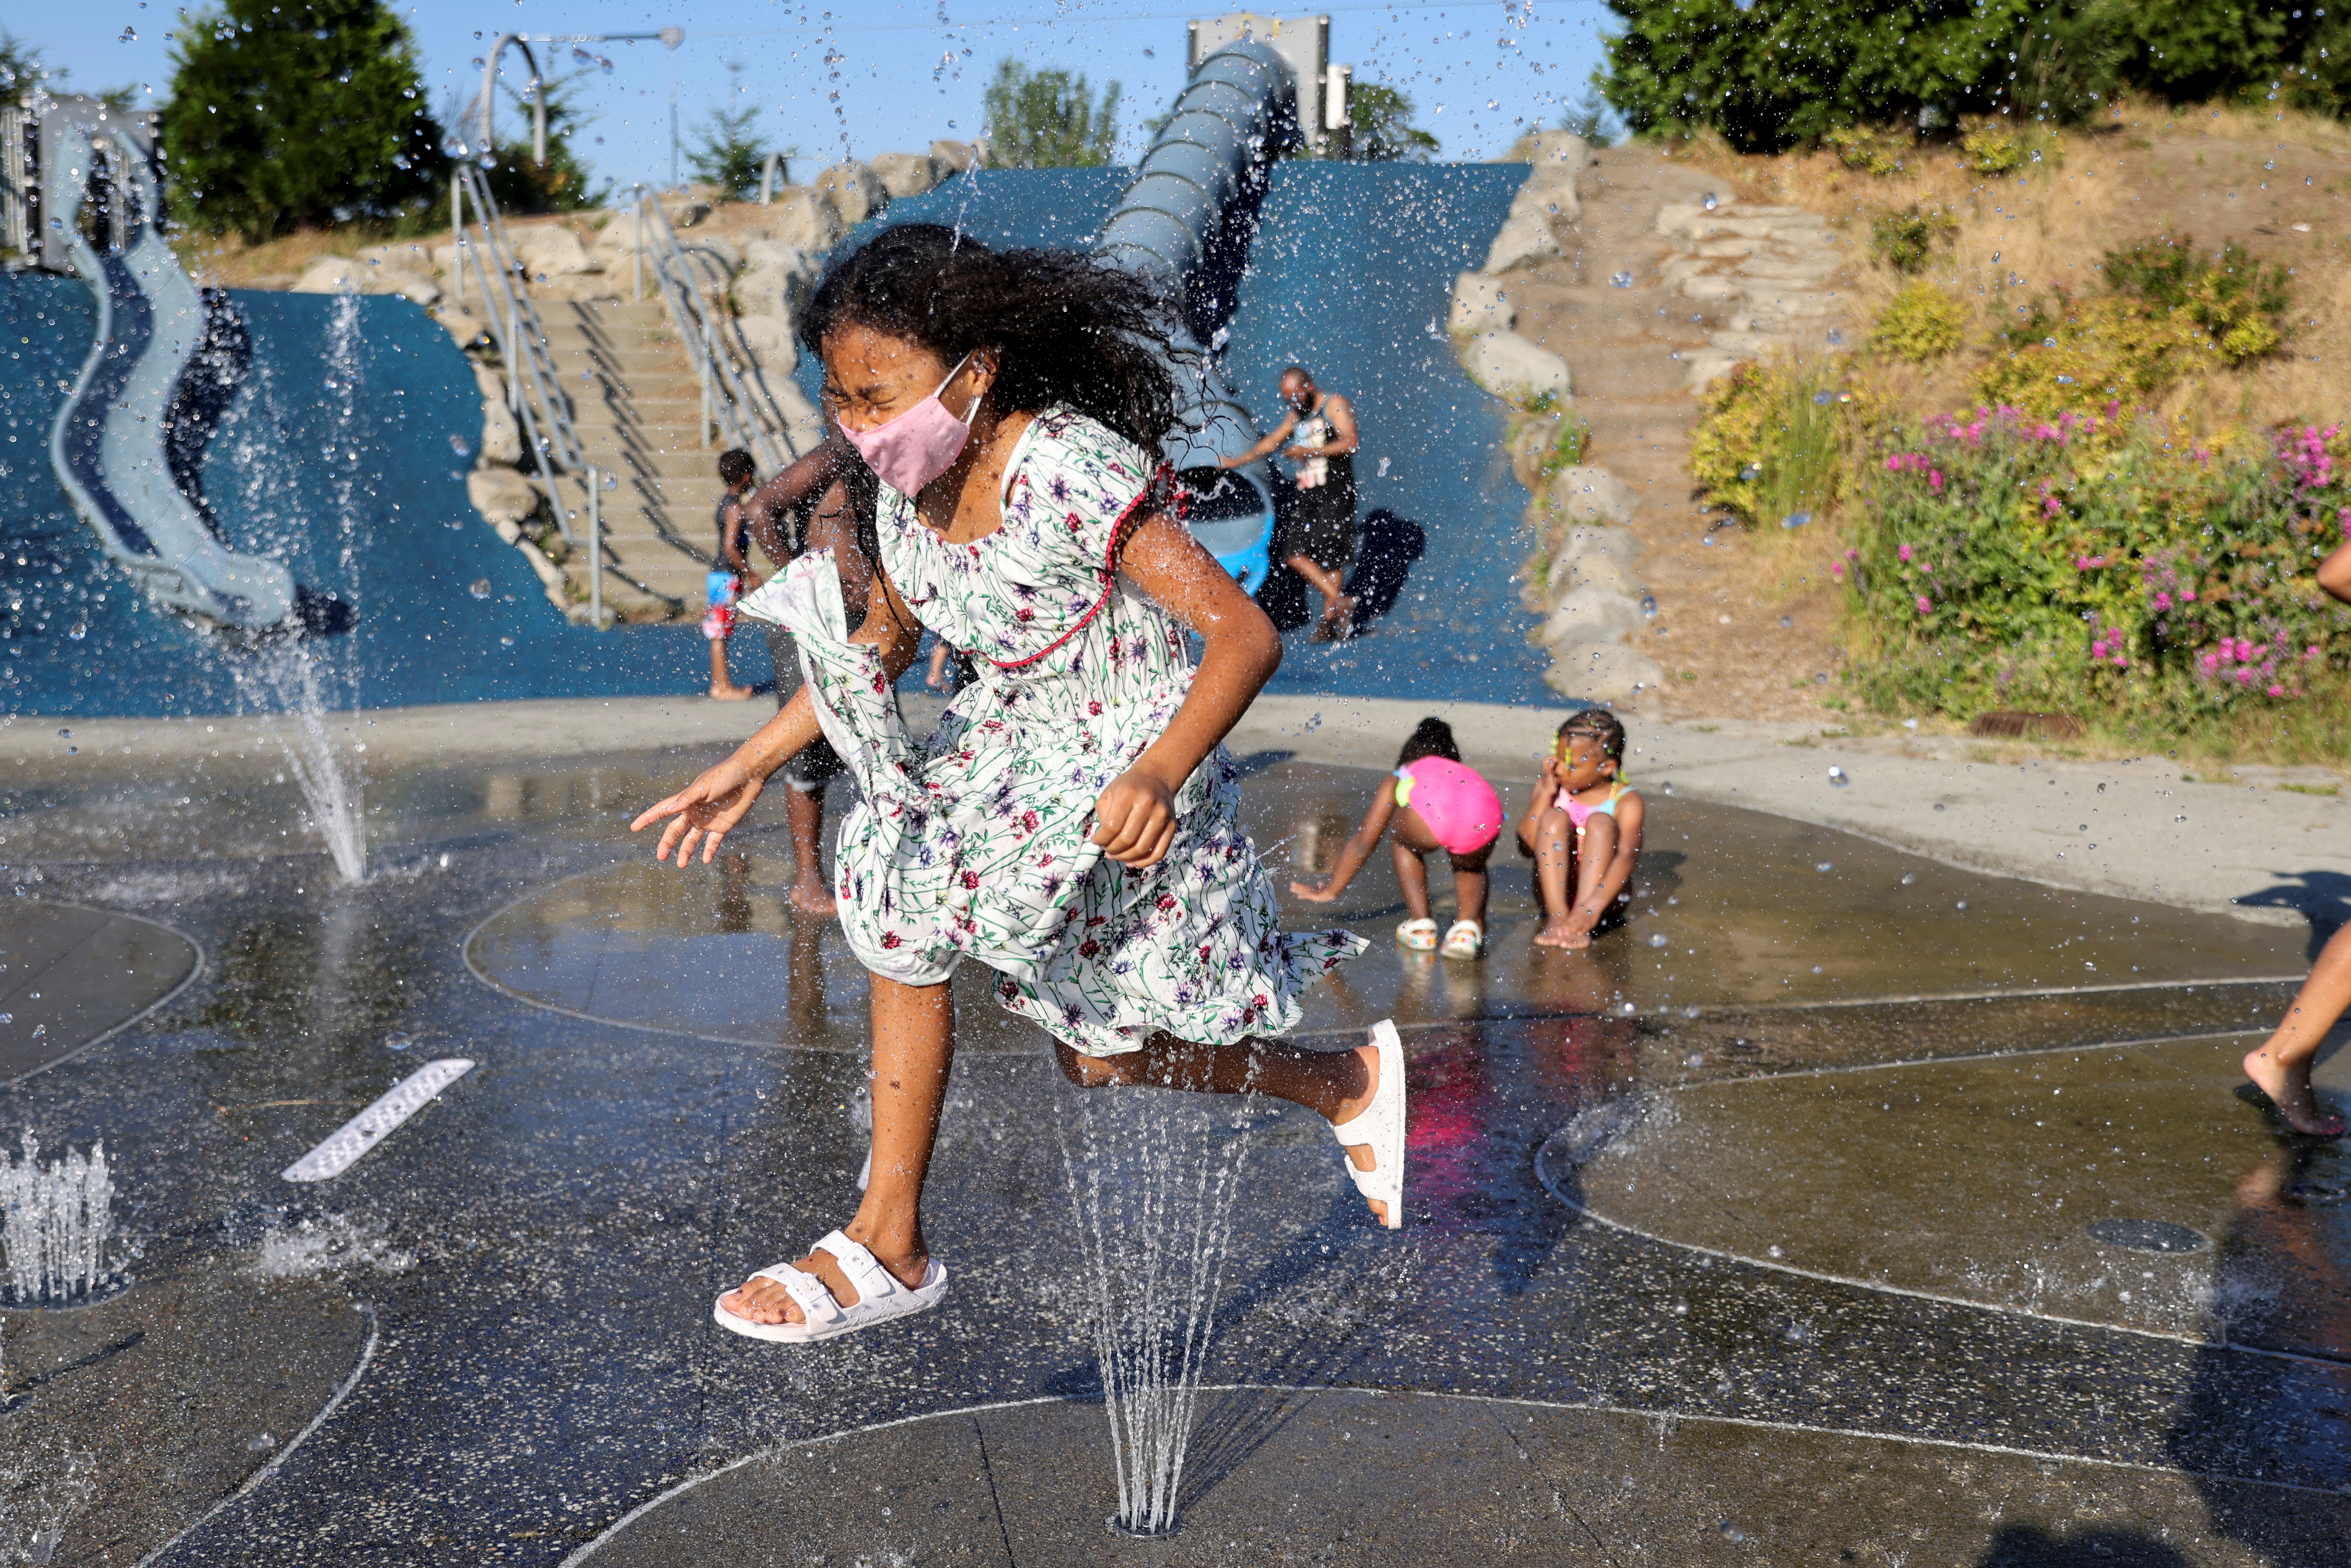 Isis Macadaeg, age 7, plays in a spray park at Jefferson Park during a heat wave in Seattle, Washington, U.S., June 27, 2021. REUTERS/Karen Ducey